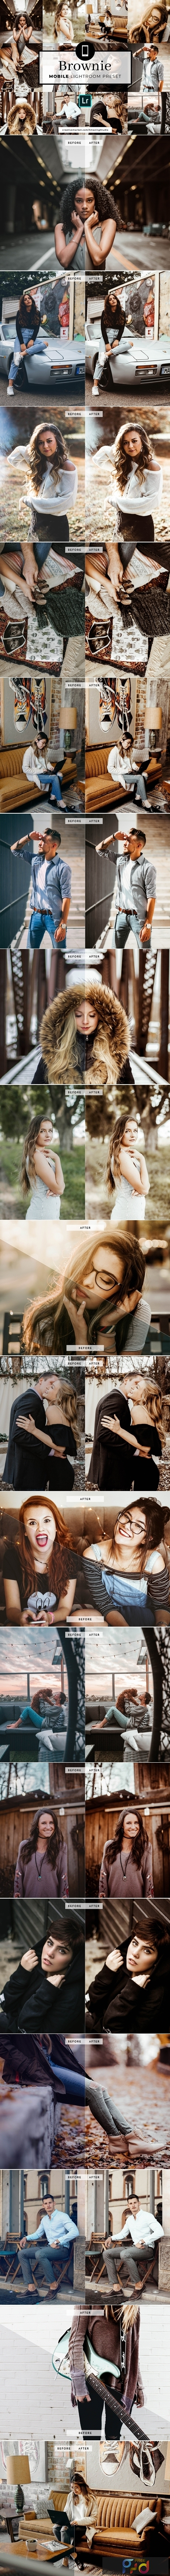 Mobile Lightroom Preset Brownie 3321741 1